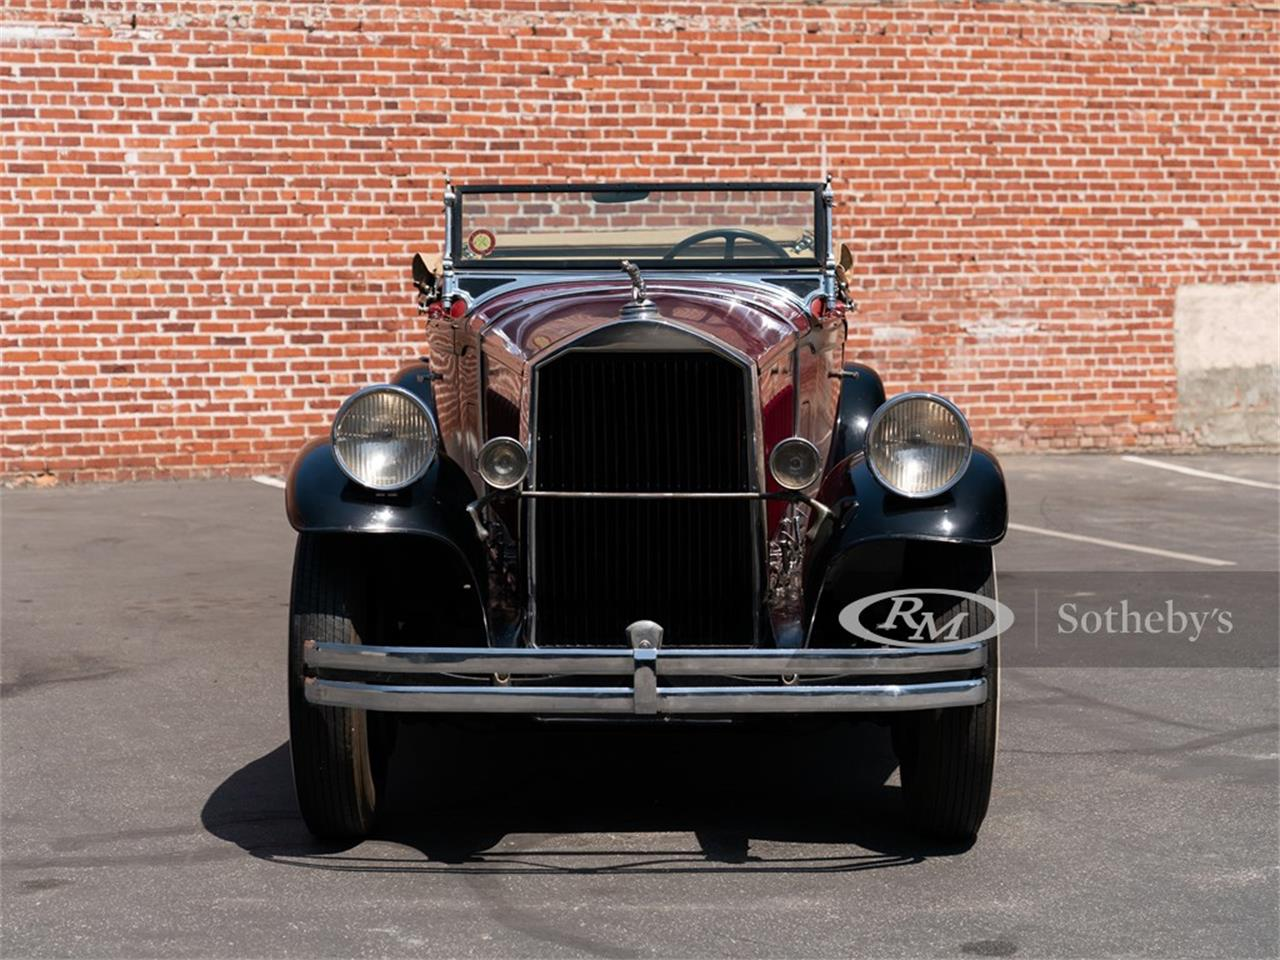 1929 Pierce-Arrow Model 125 (CC-1382472) for sale in Online, California